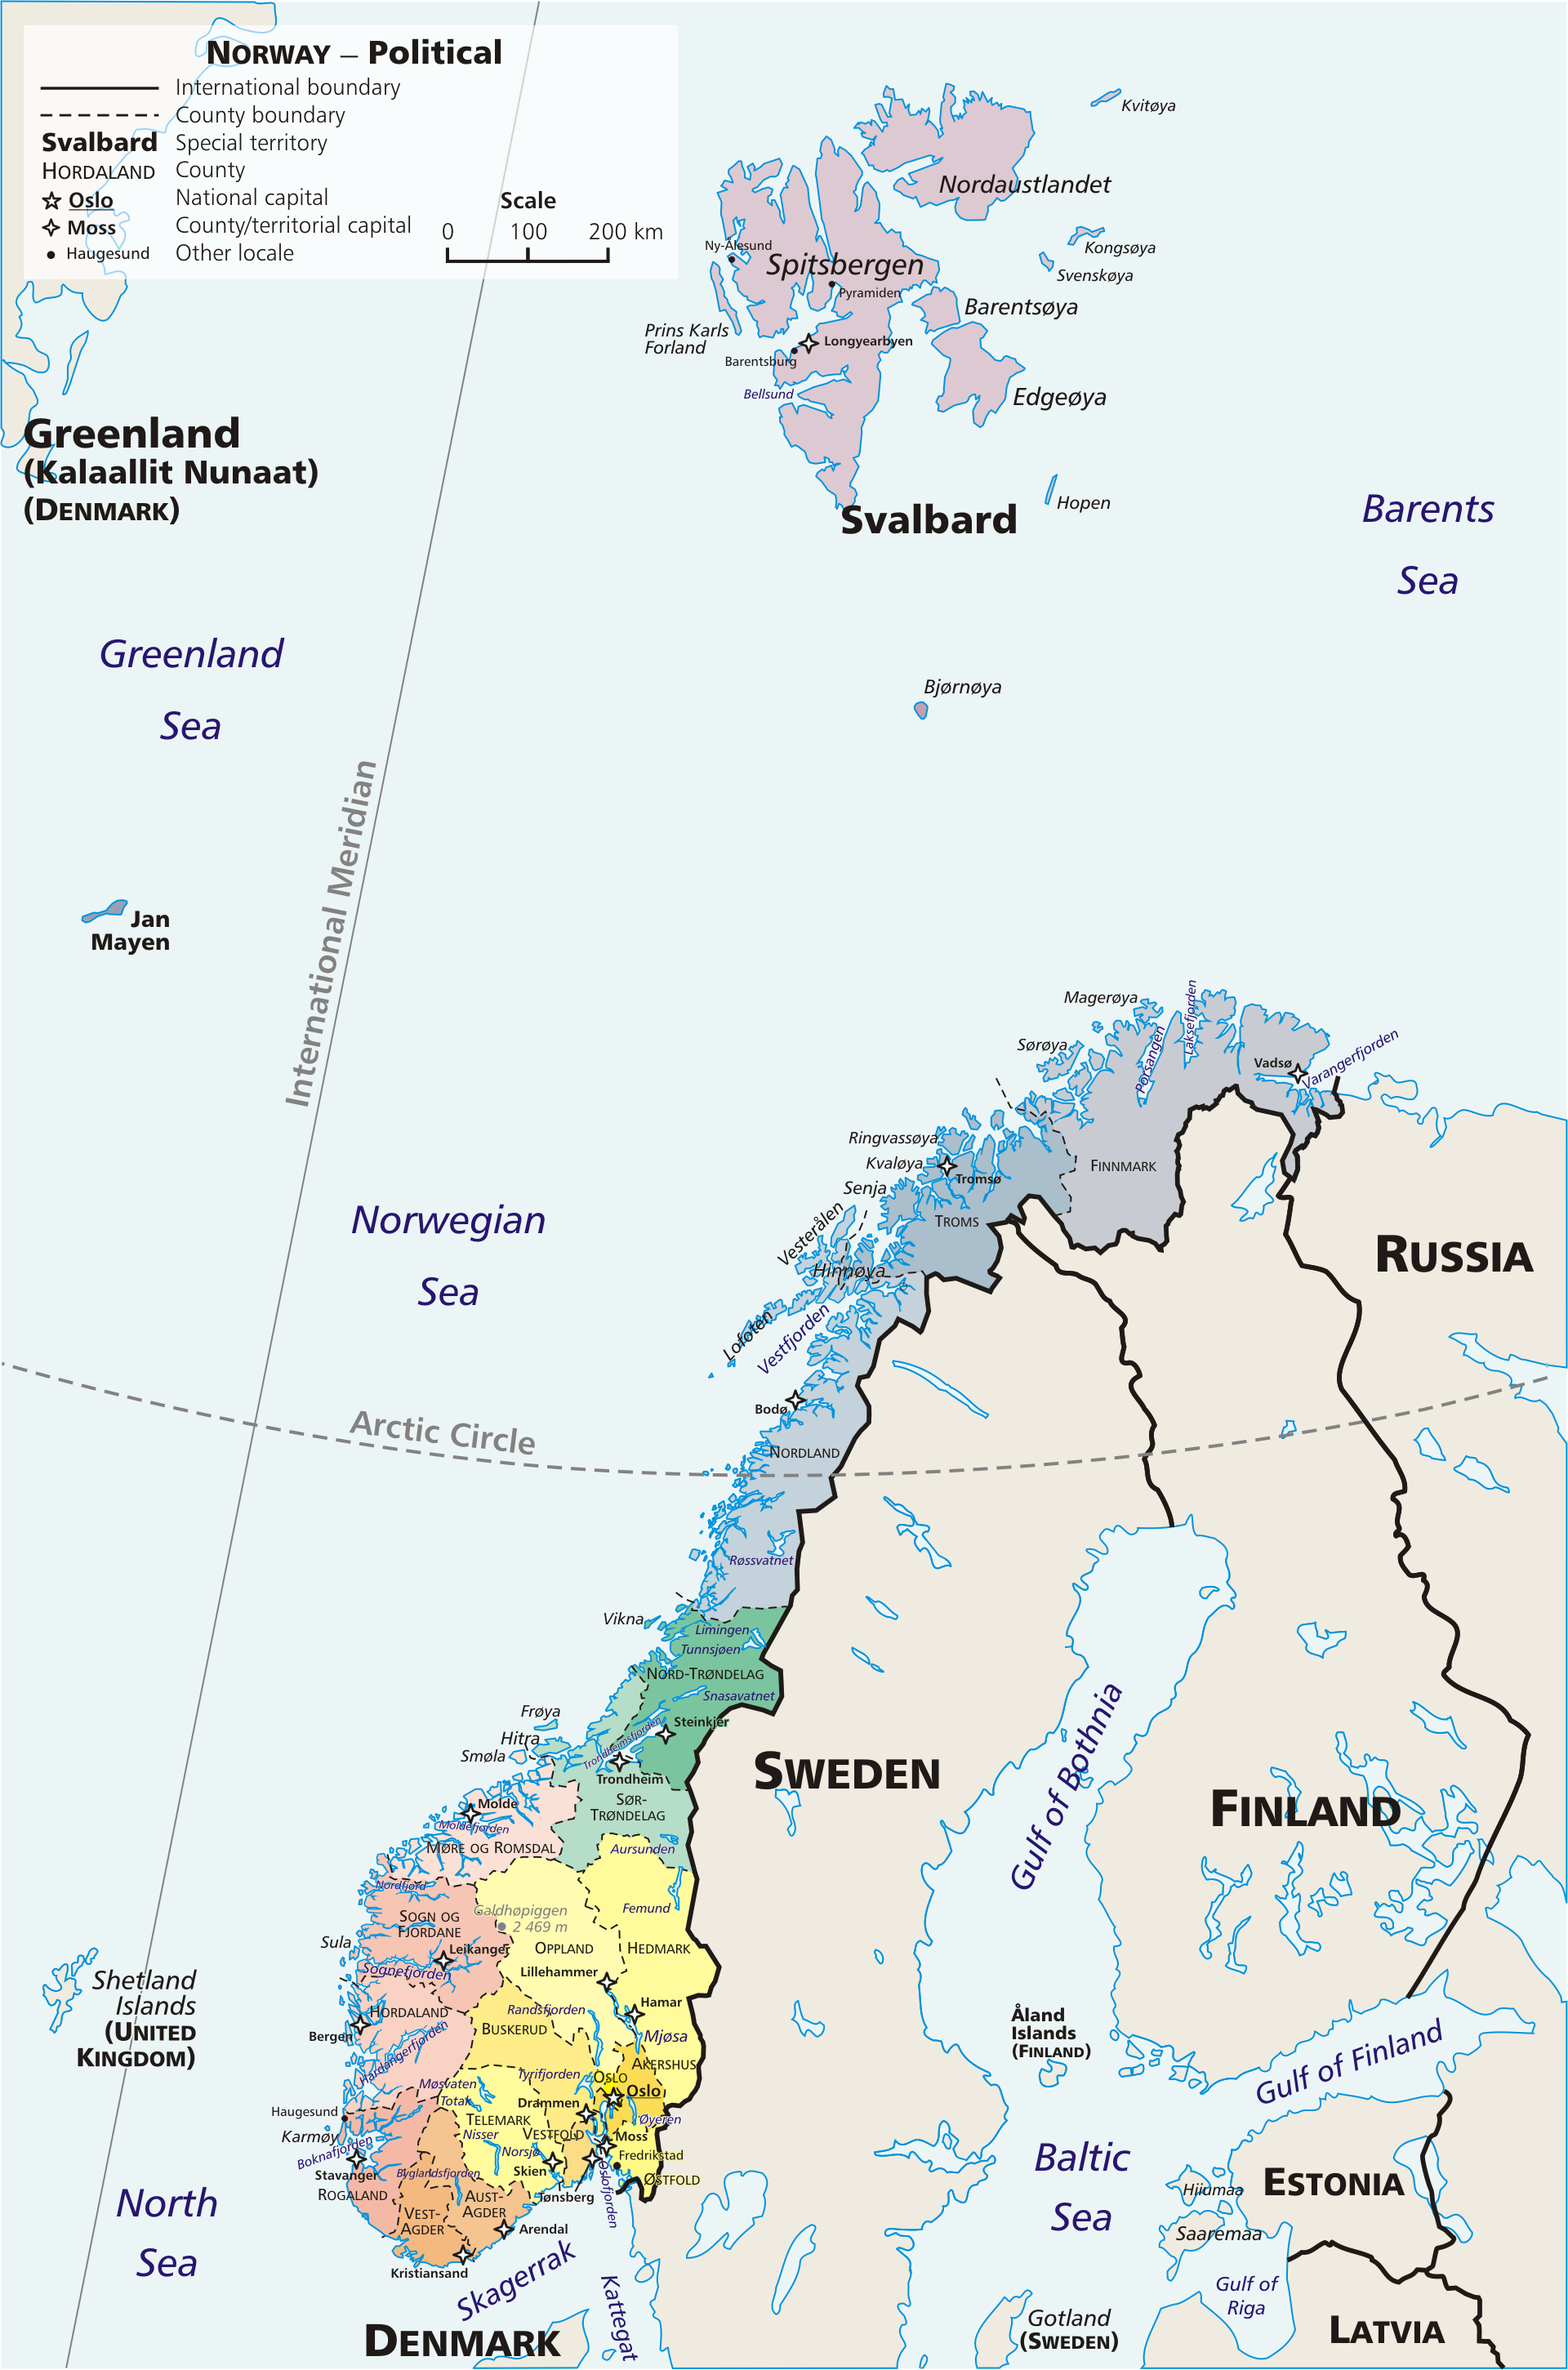 Image Map Norway Political Geo Png Implausable Alternate History